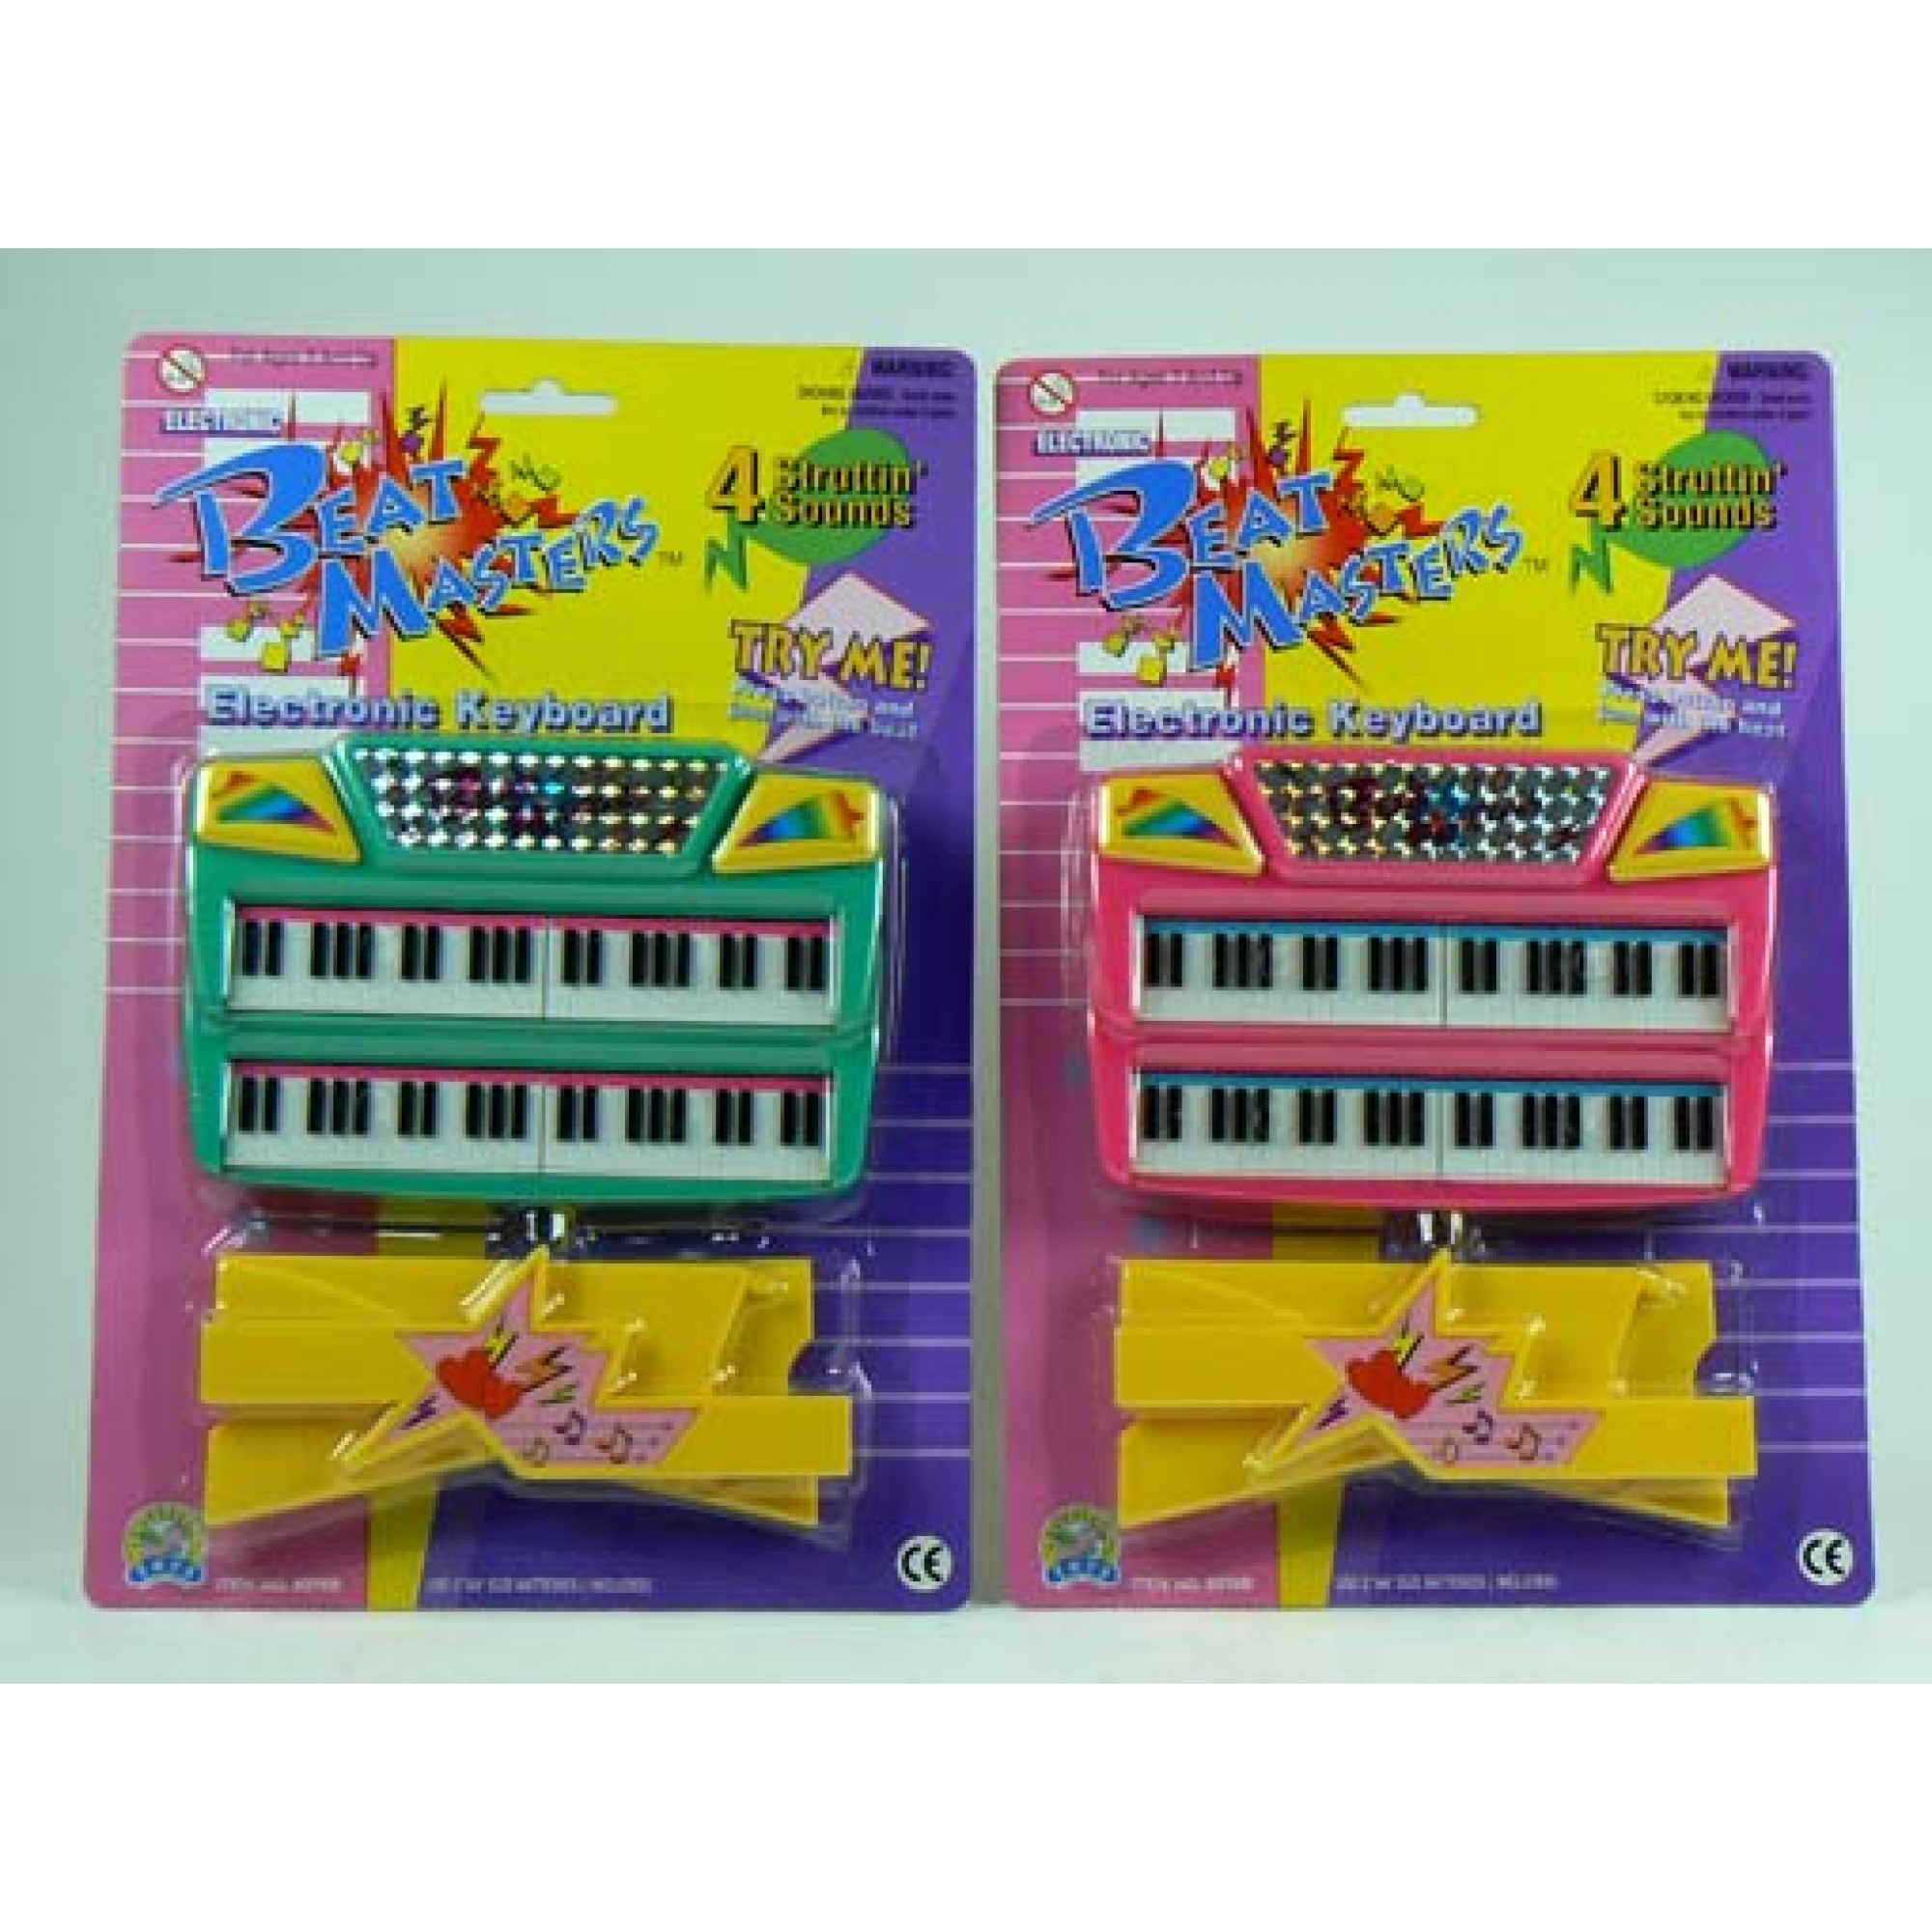 Beat Master Electronic Keyboard